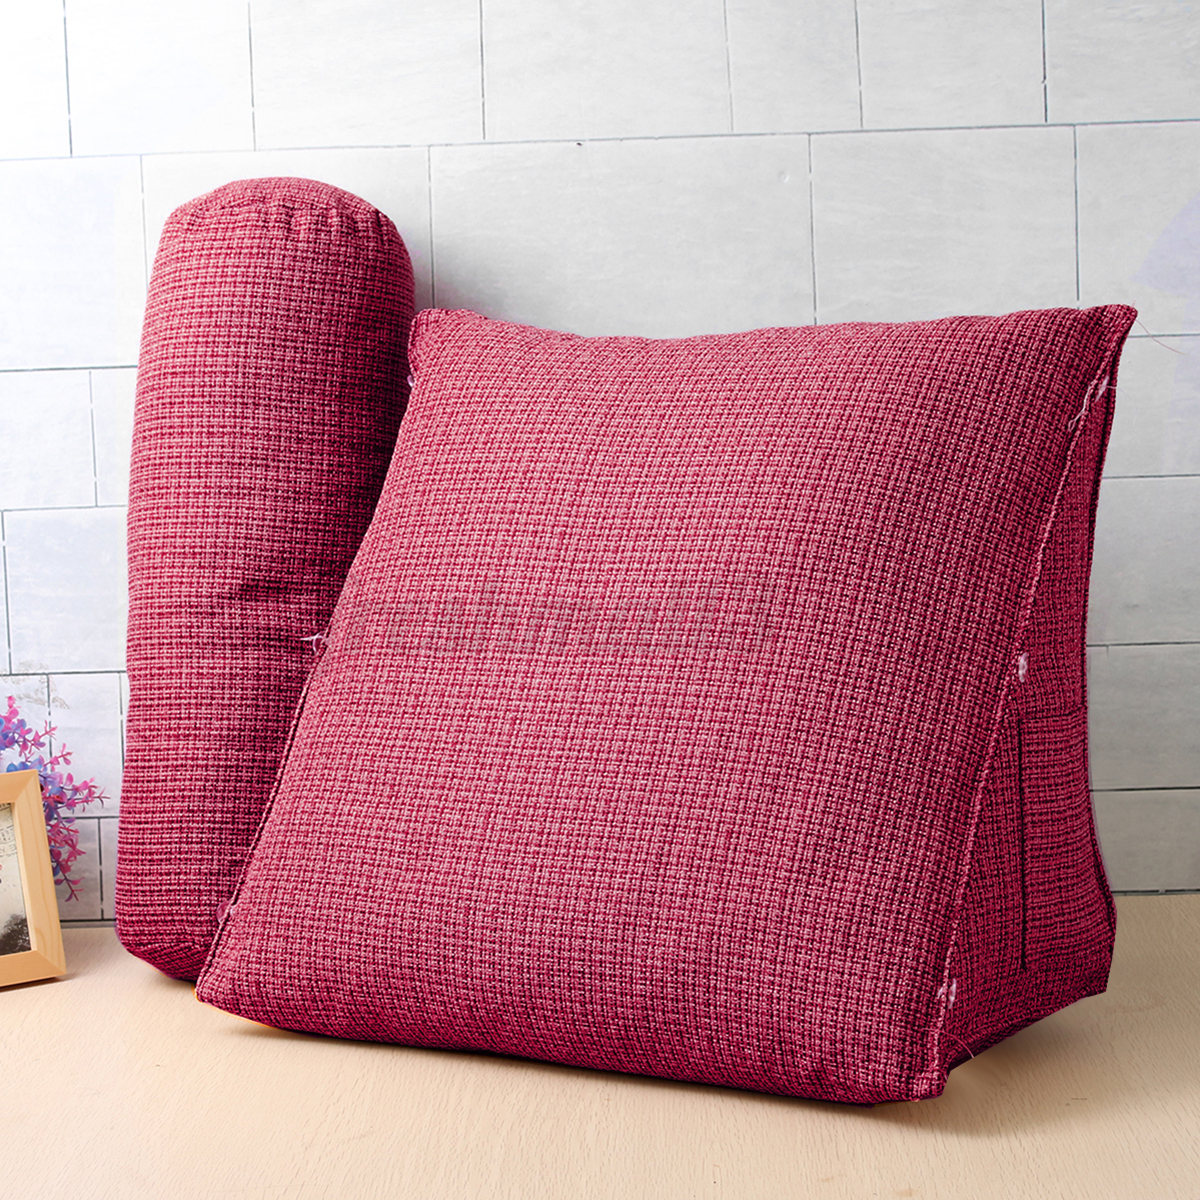 back pillow for office chair high converts to table and big adjustable wedge cushion sofa bed